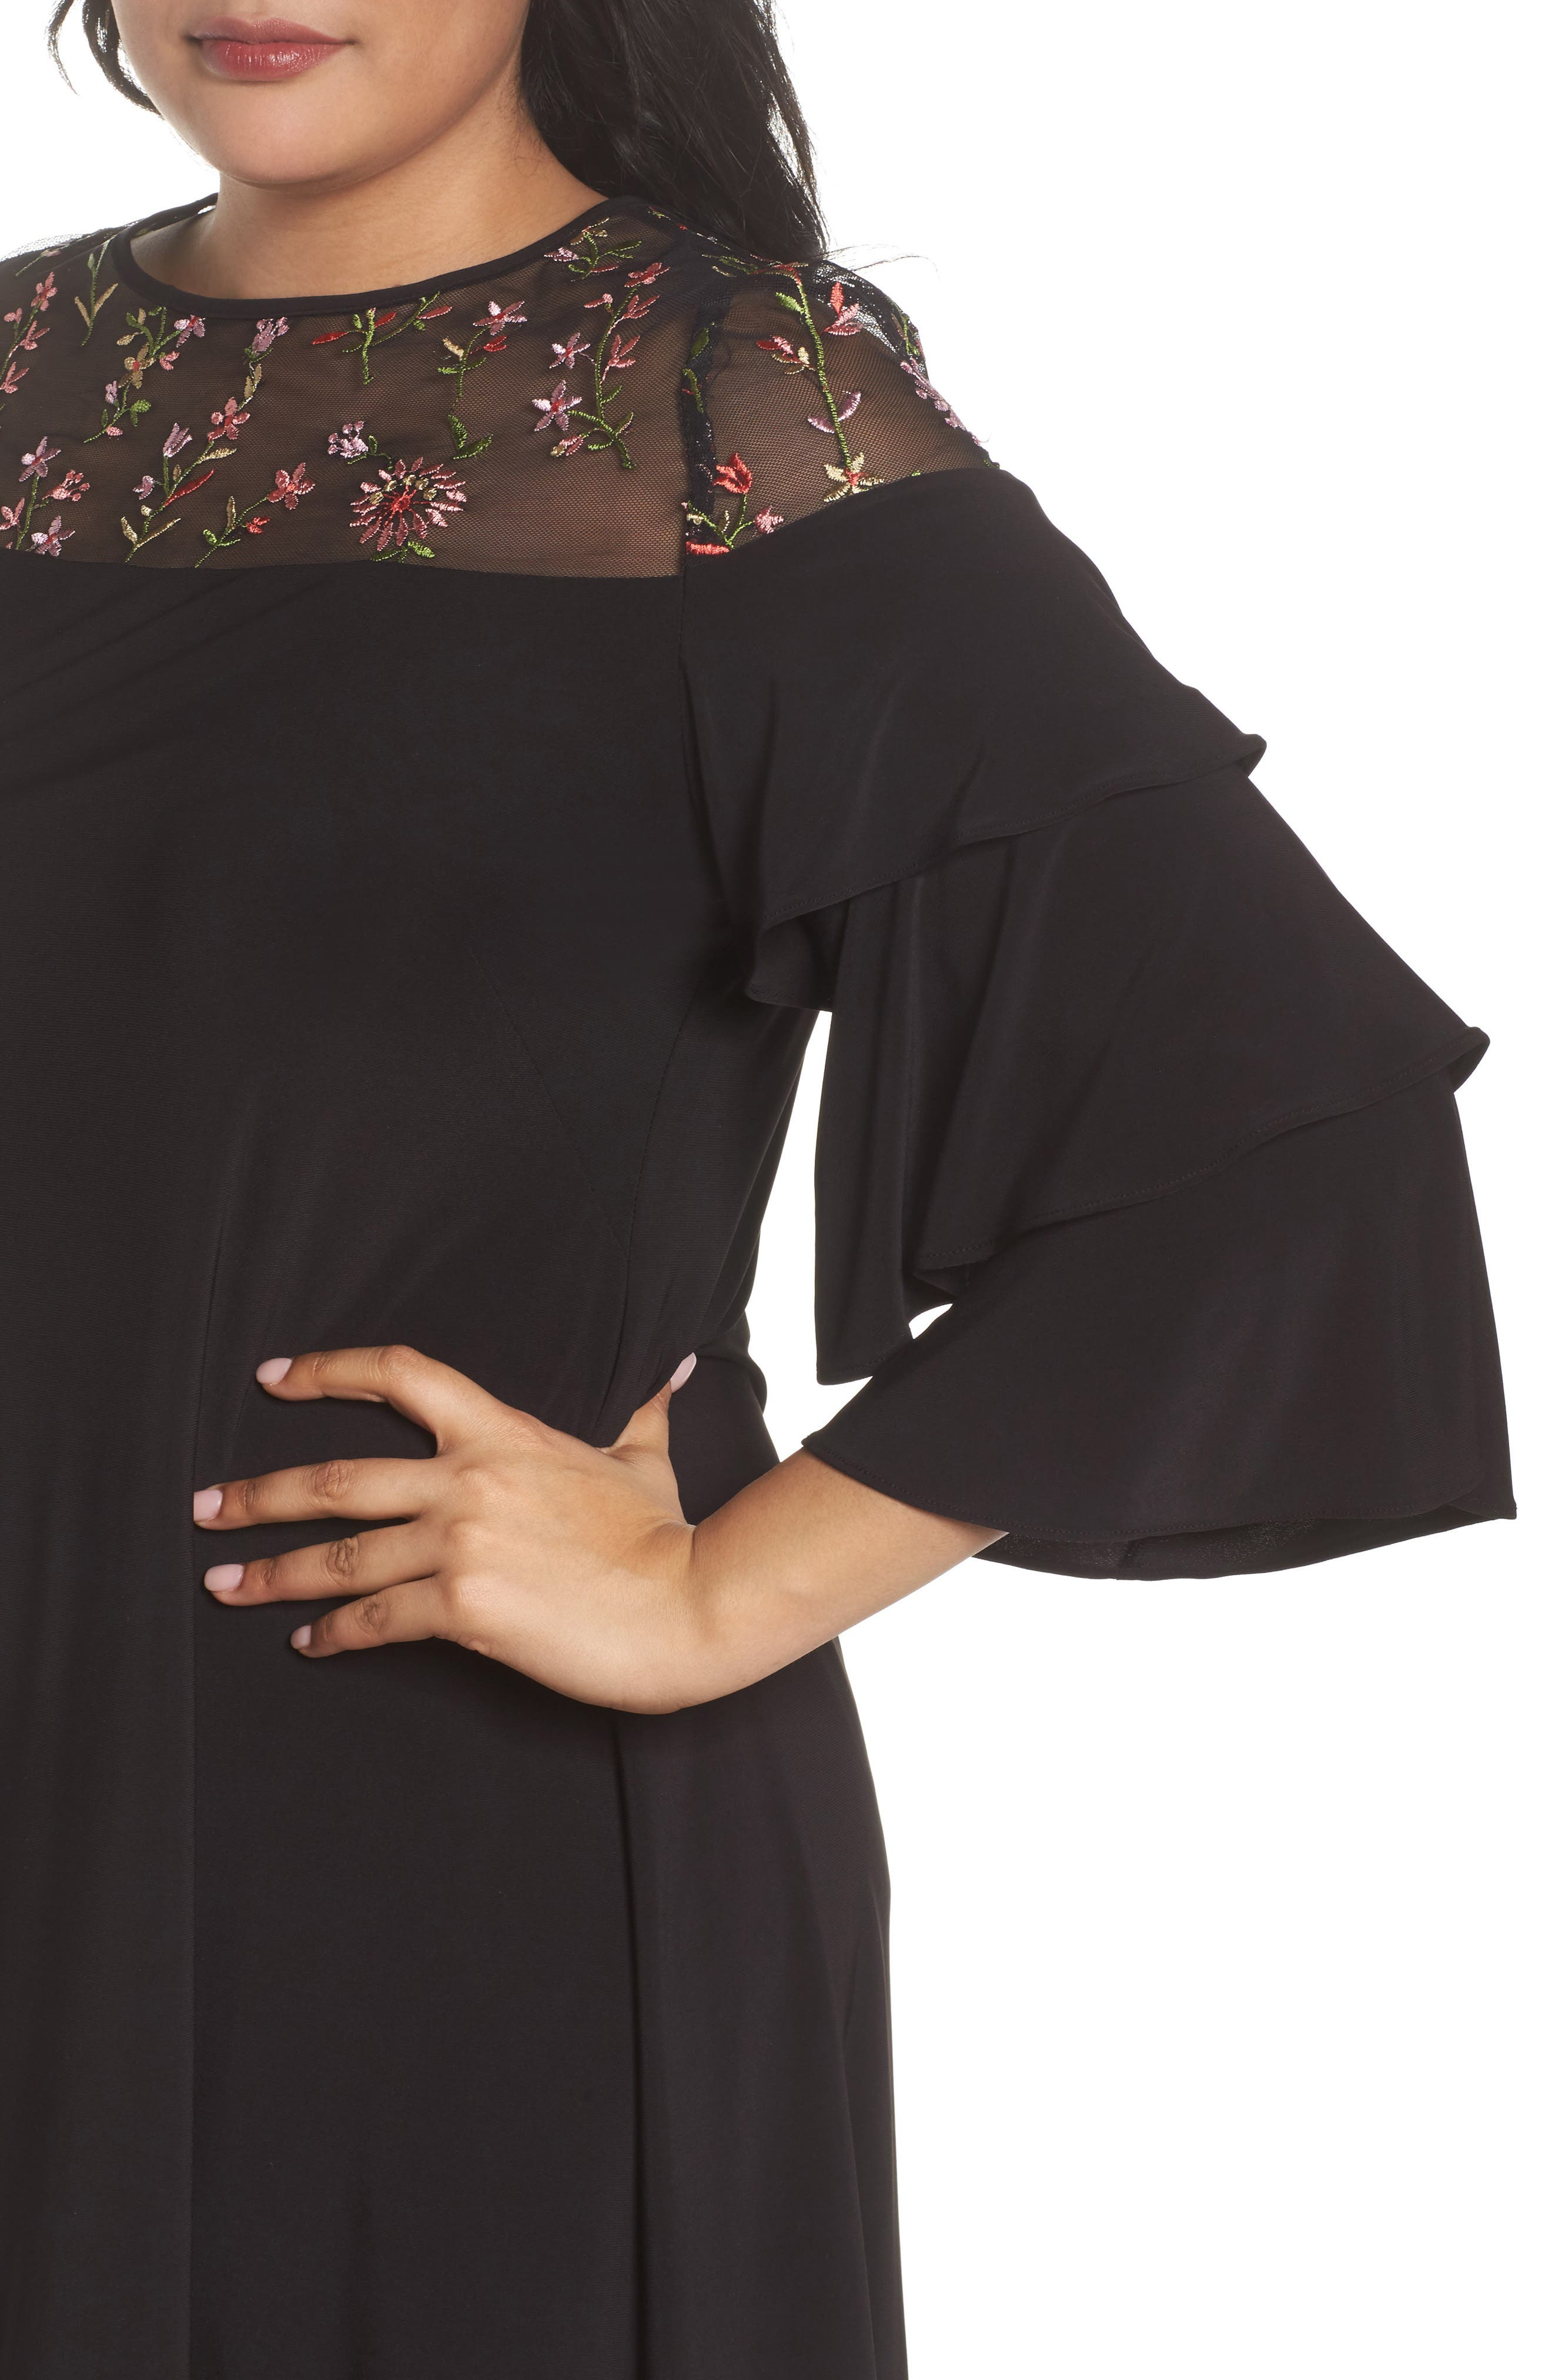 Ruffled Sleeve Embroidered Yoke A-Line Dress,                             Alternate thumbnail 4, color,                             002